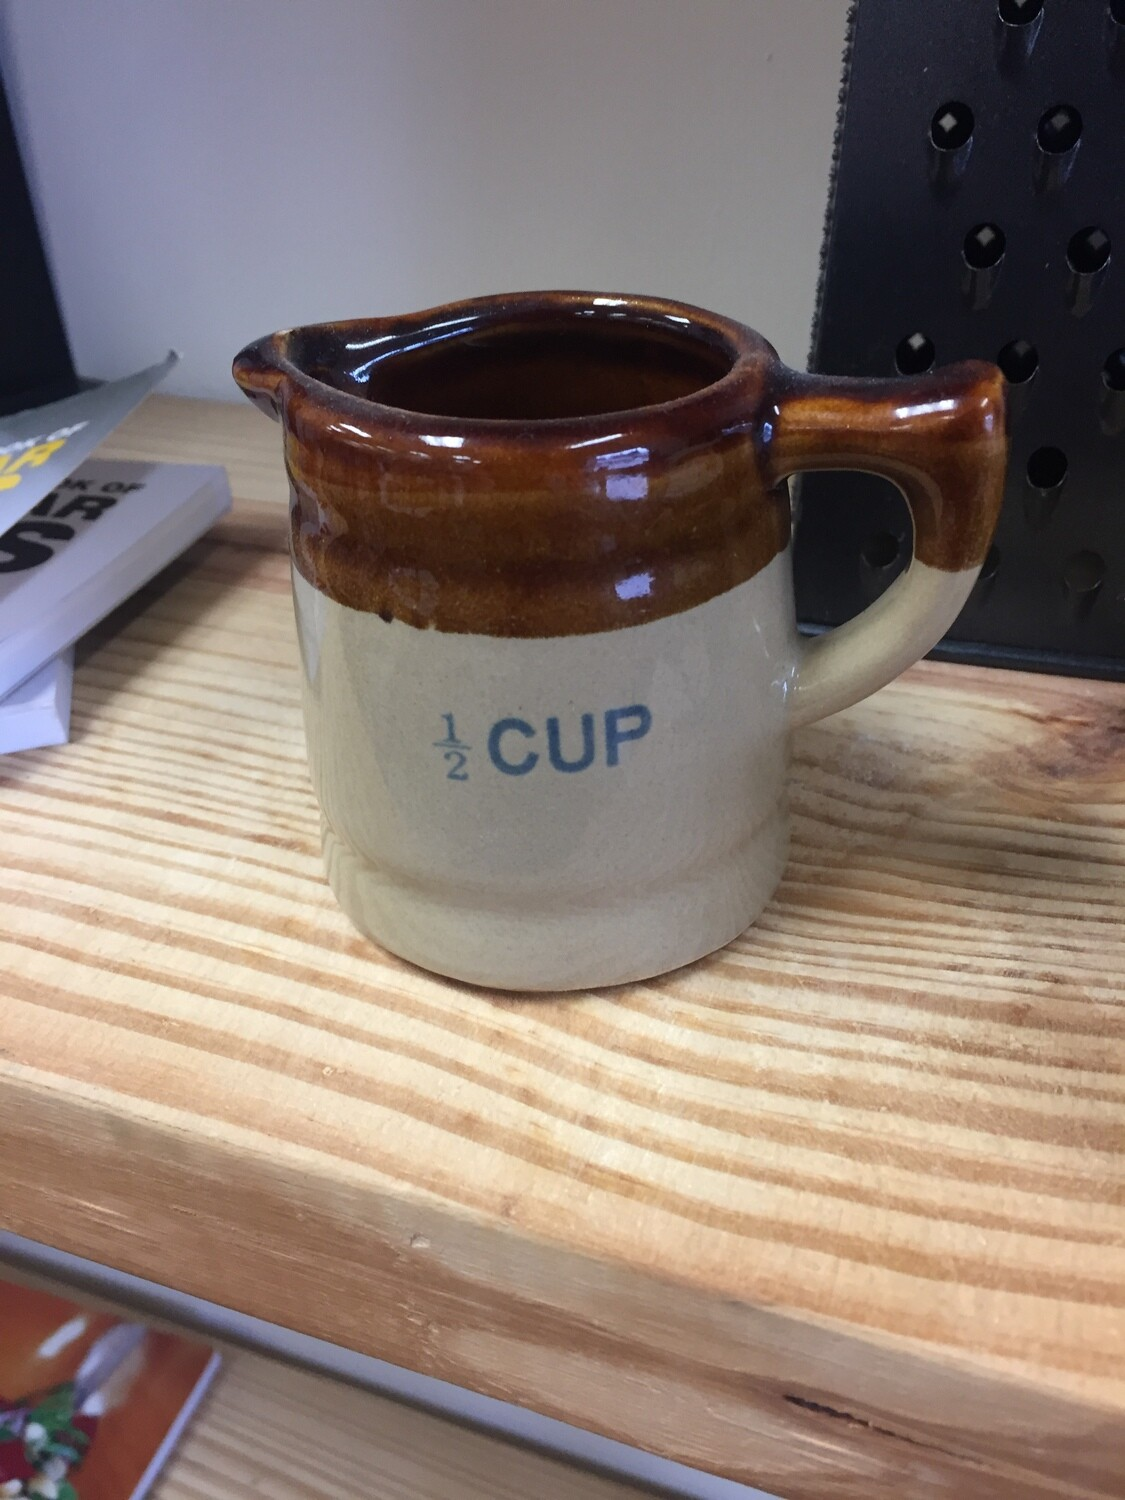 1/2 cup measuring pitcher